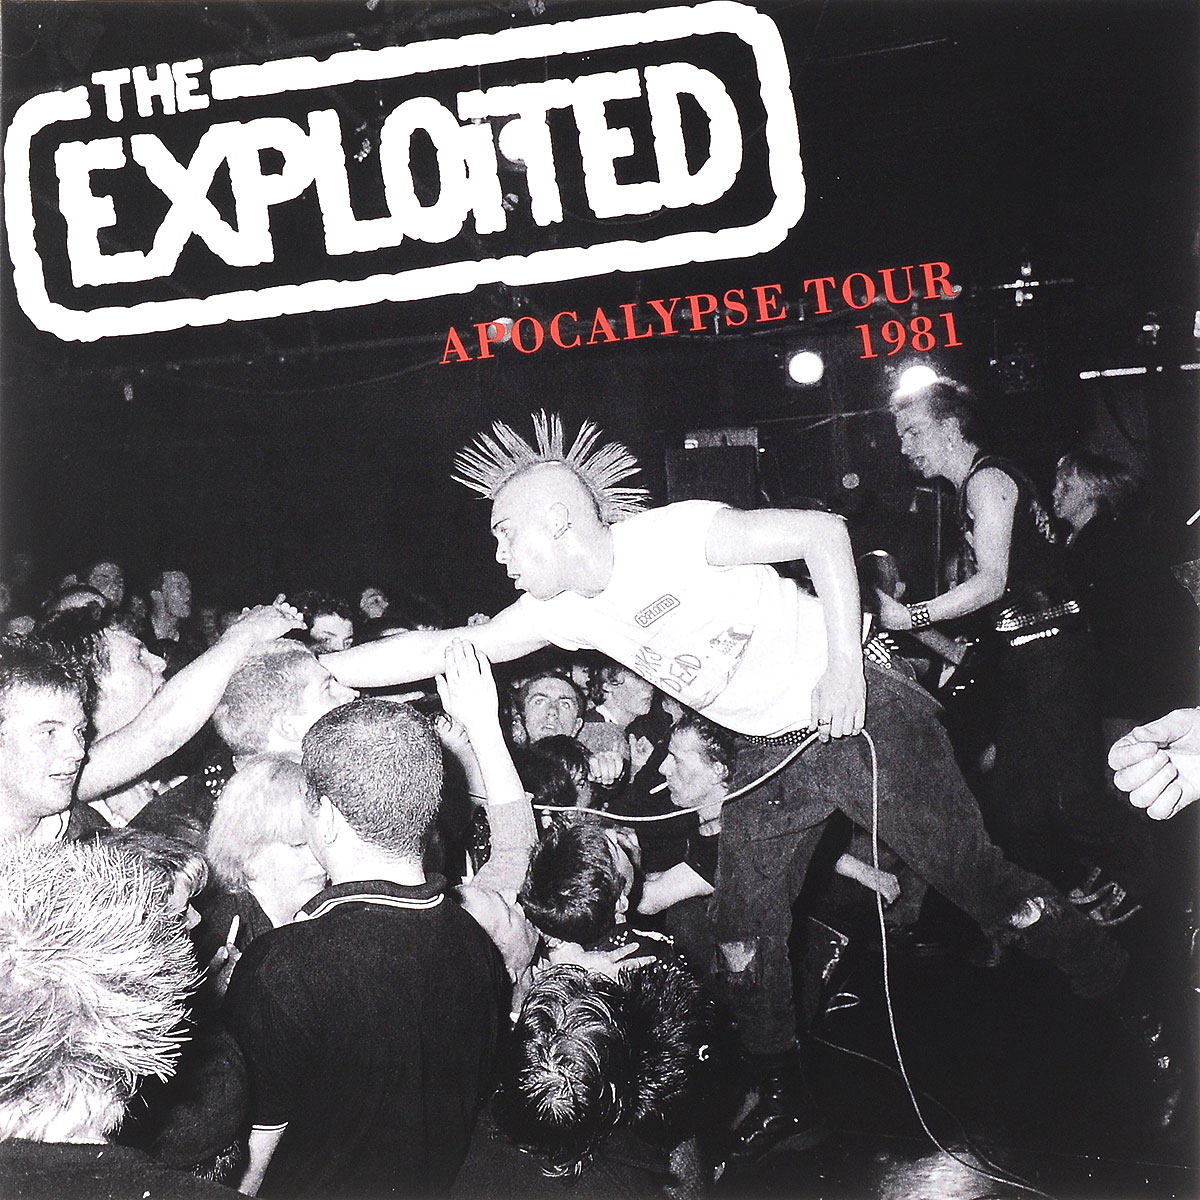 The Exploited The Exploited. Apocalypse Tour 1981. Limited Edition (LP) the exploited the exploited apocalypse tour 1981 limited edition lp